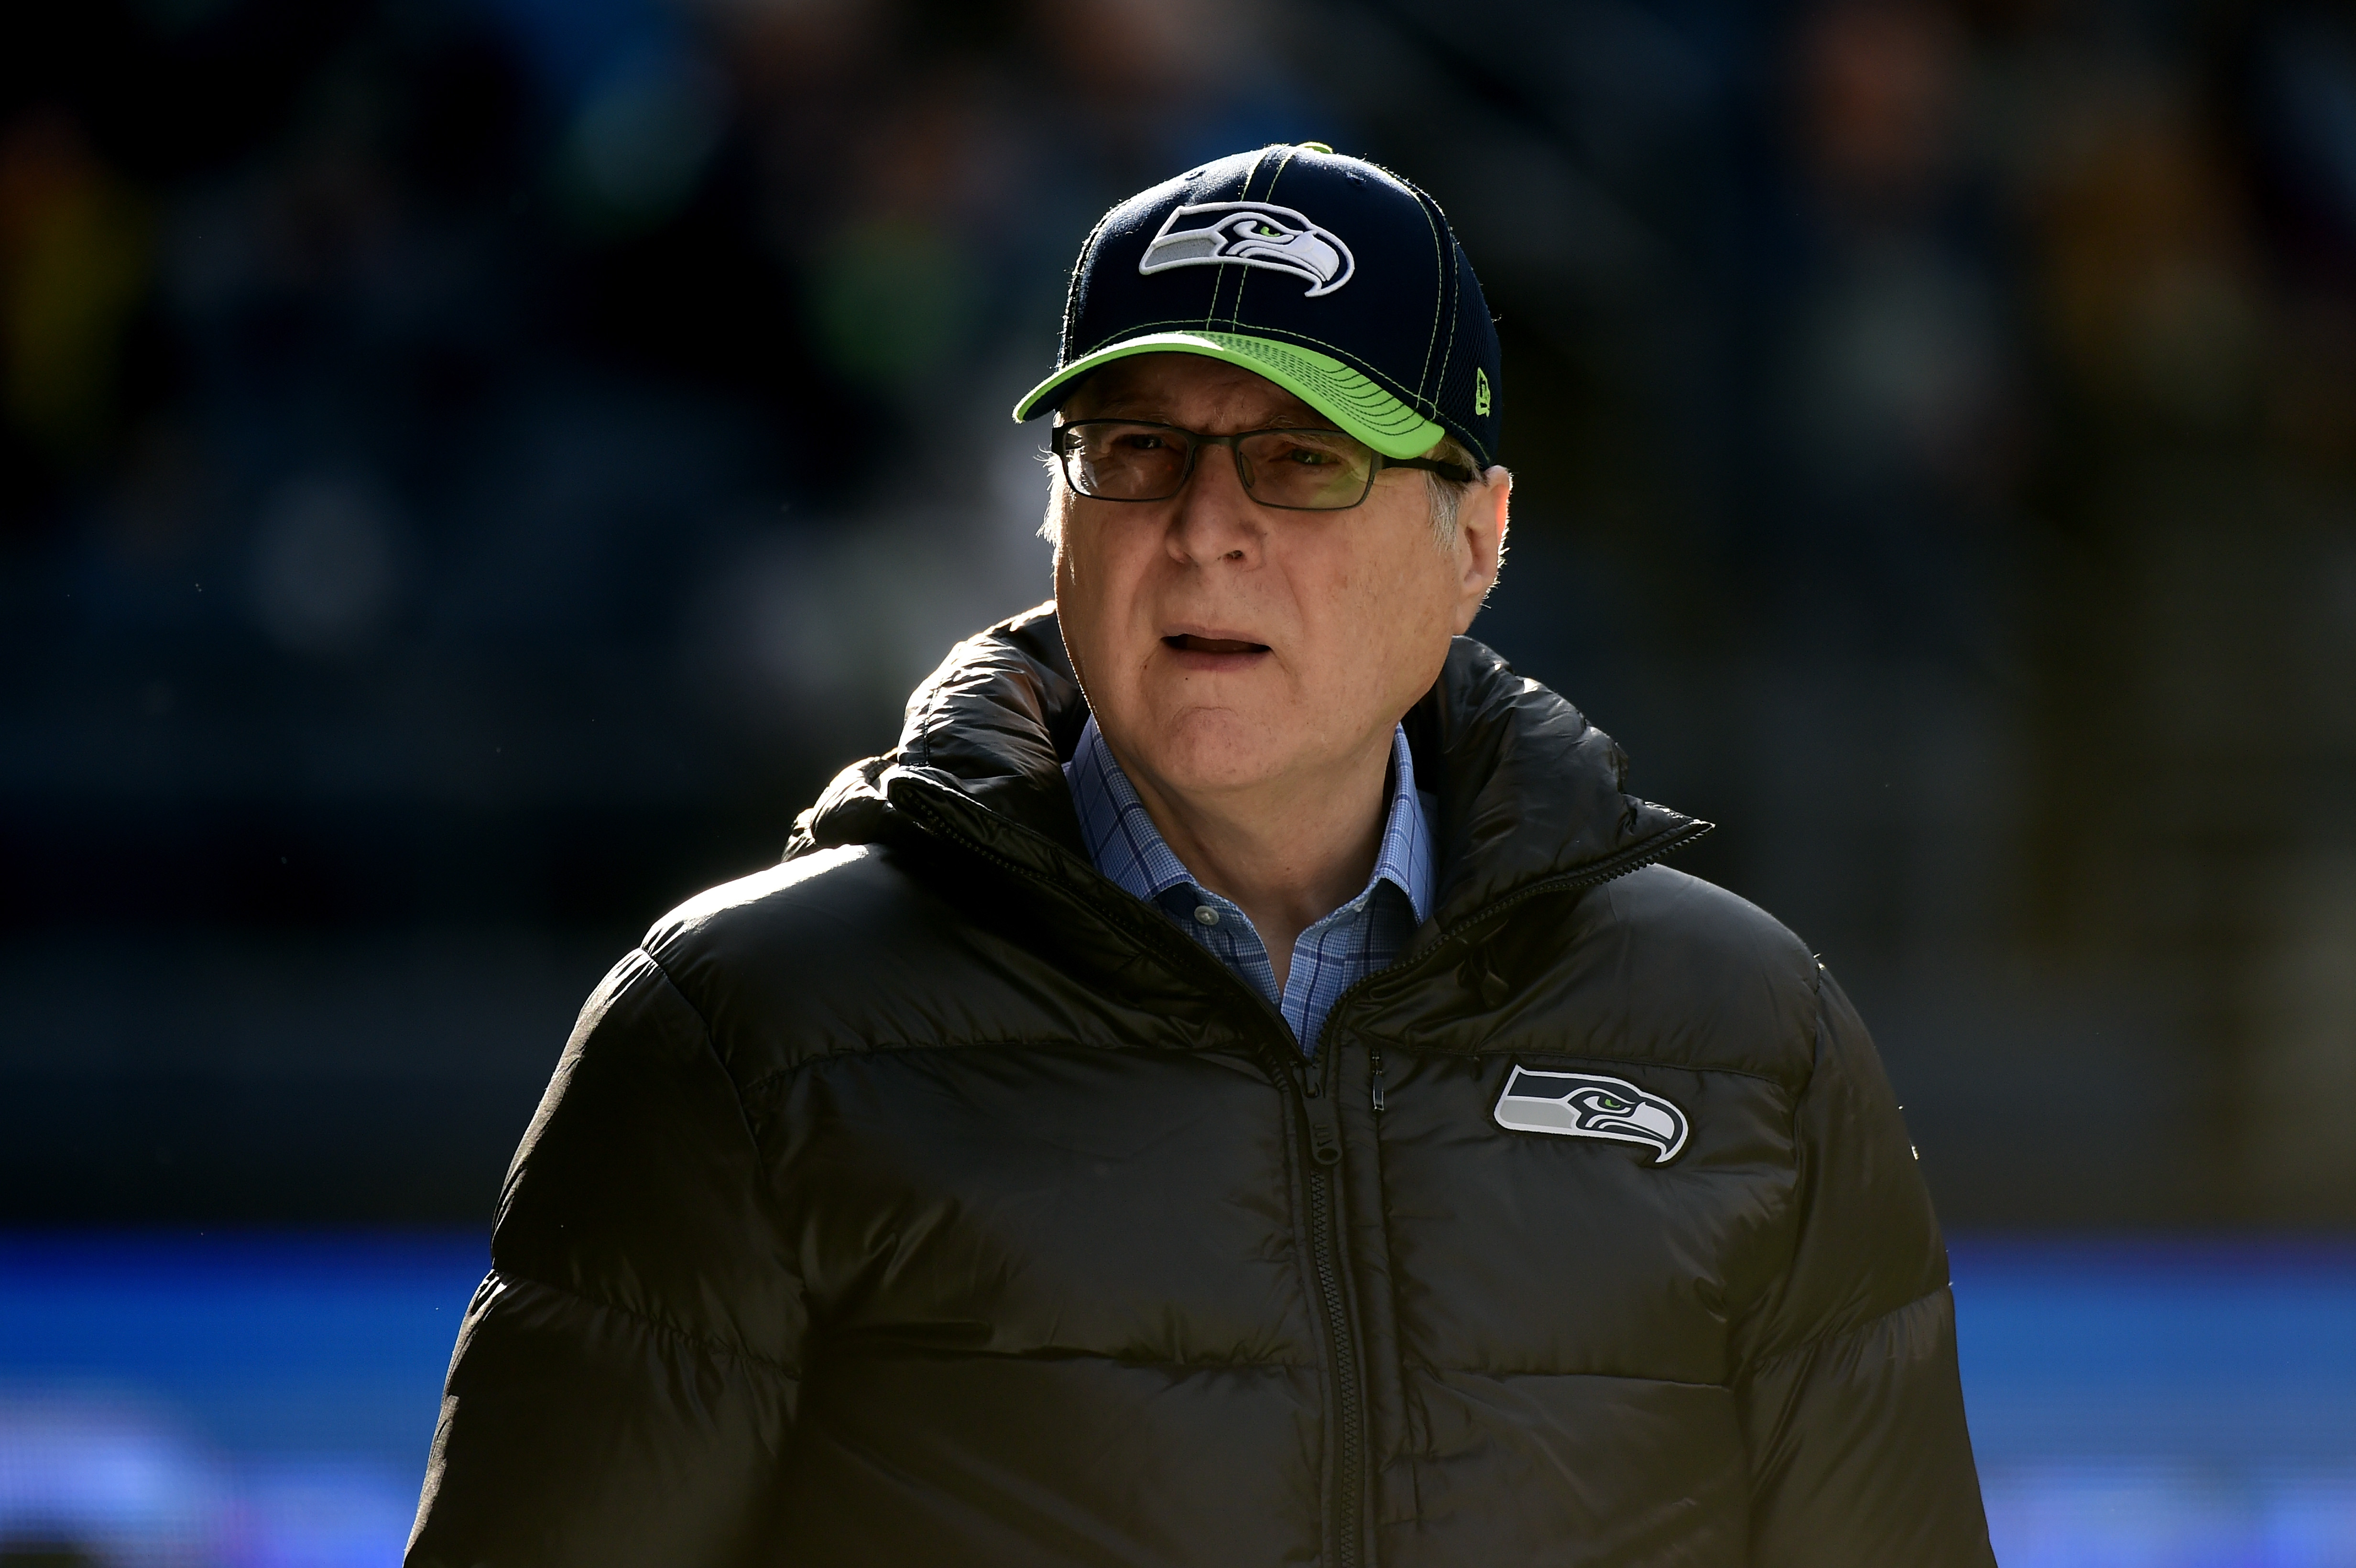 Seattle Seahawks owner Paul Allen walks on the field prior to their game against the Arizona Cardinals at CenturyLink Field on November 23, 2014, in Seattle, Washington (Source: Getty Images)